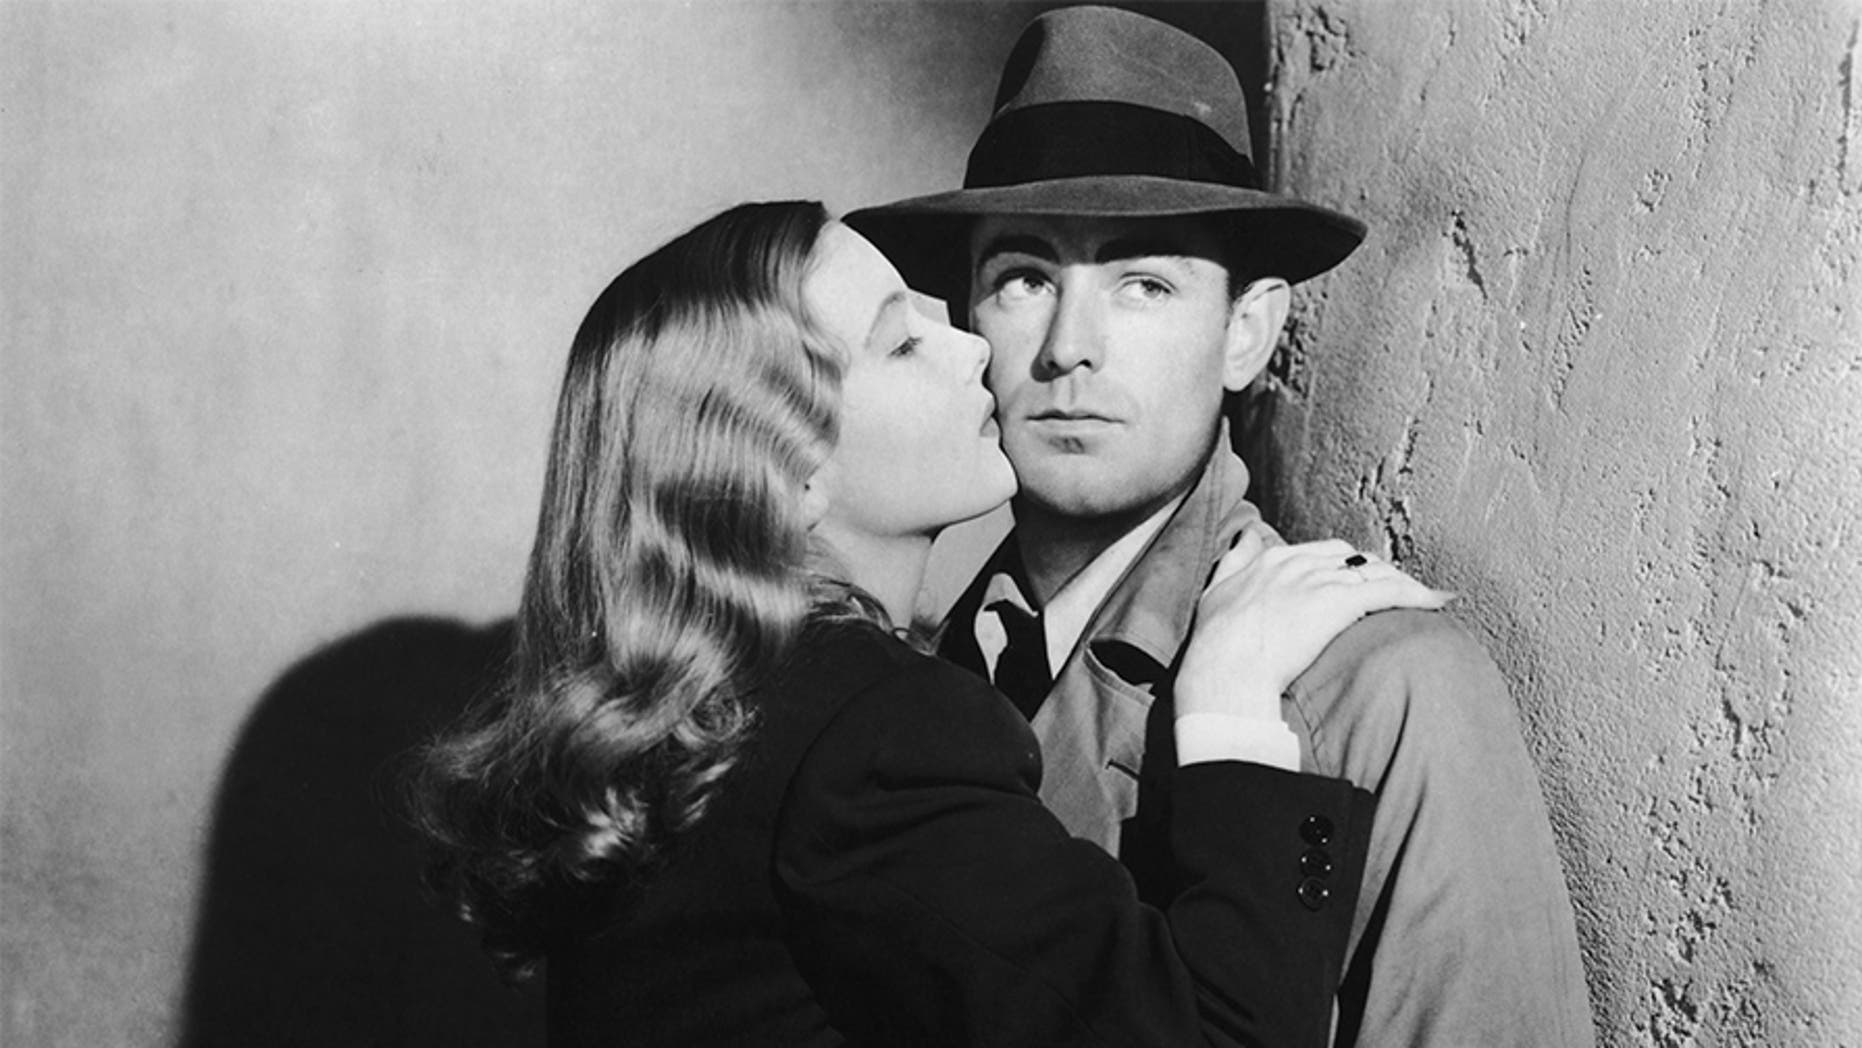 Veronica Lake (1919 - 1973) and Alan Ladd (1913 - 1964) star in the film-noir 'This Gun For Hire', 1942.